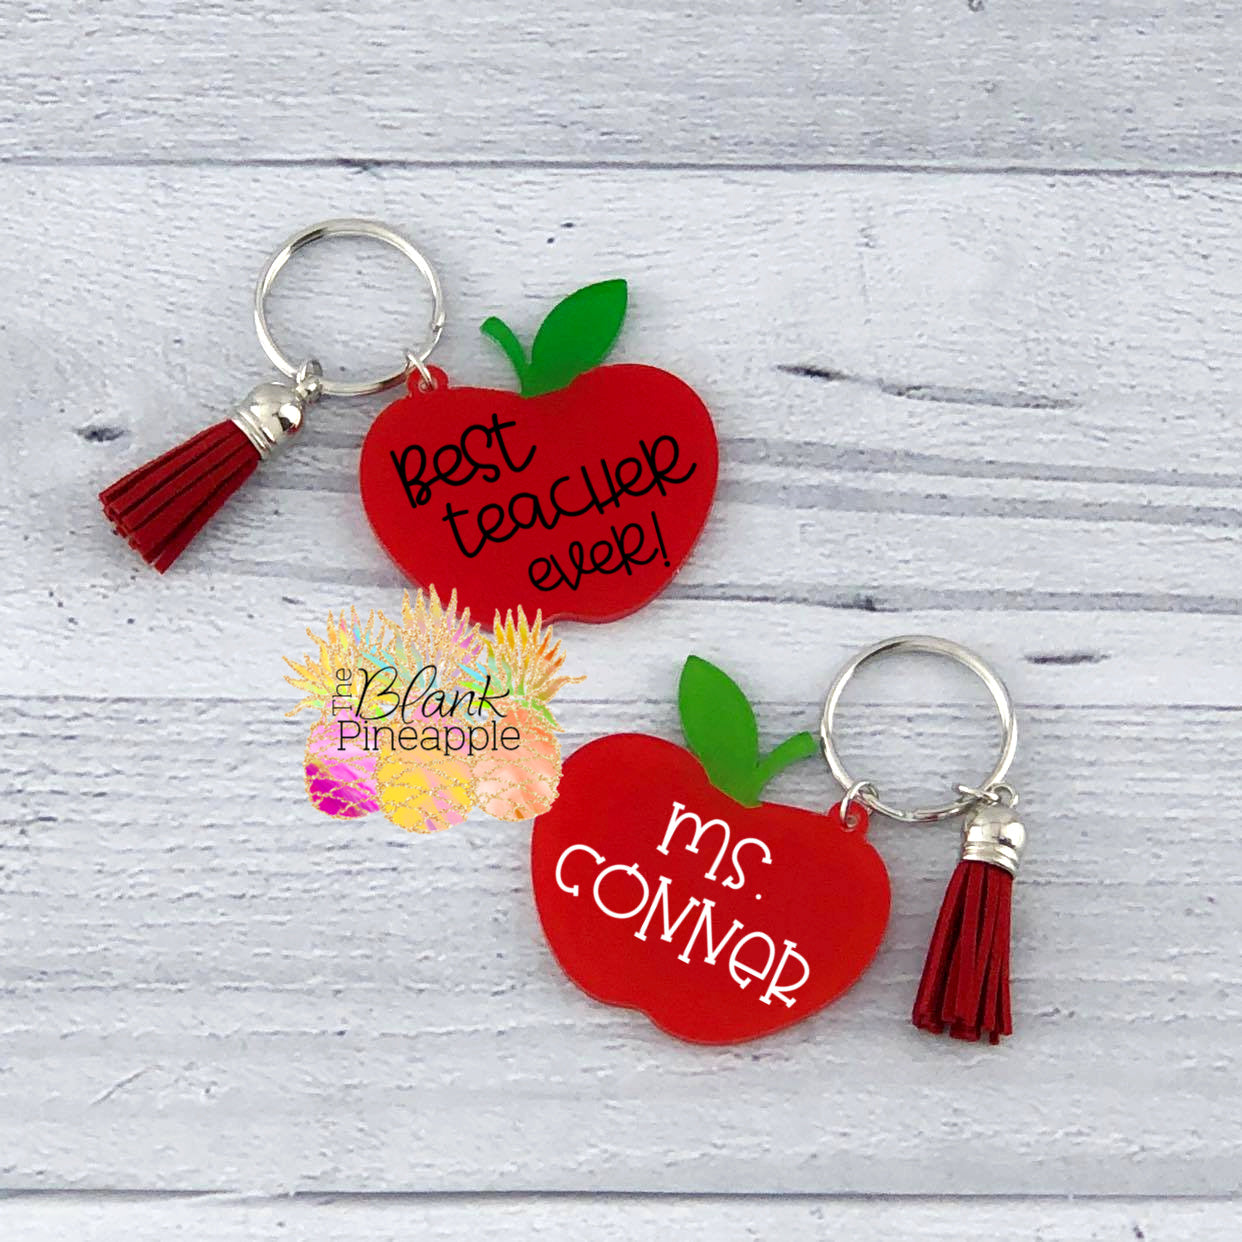 Acrylic Apple Key Ring with Tassel